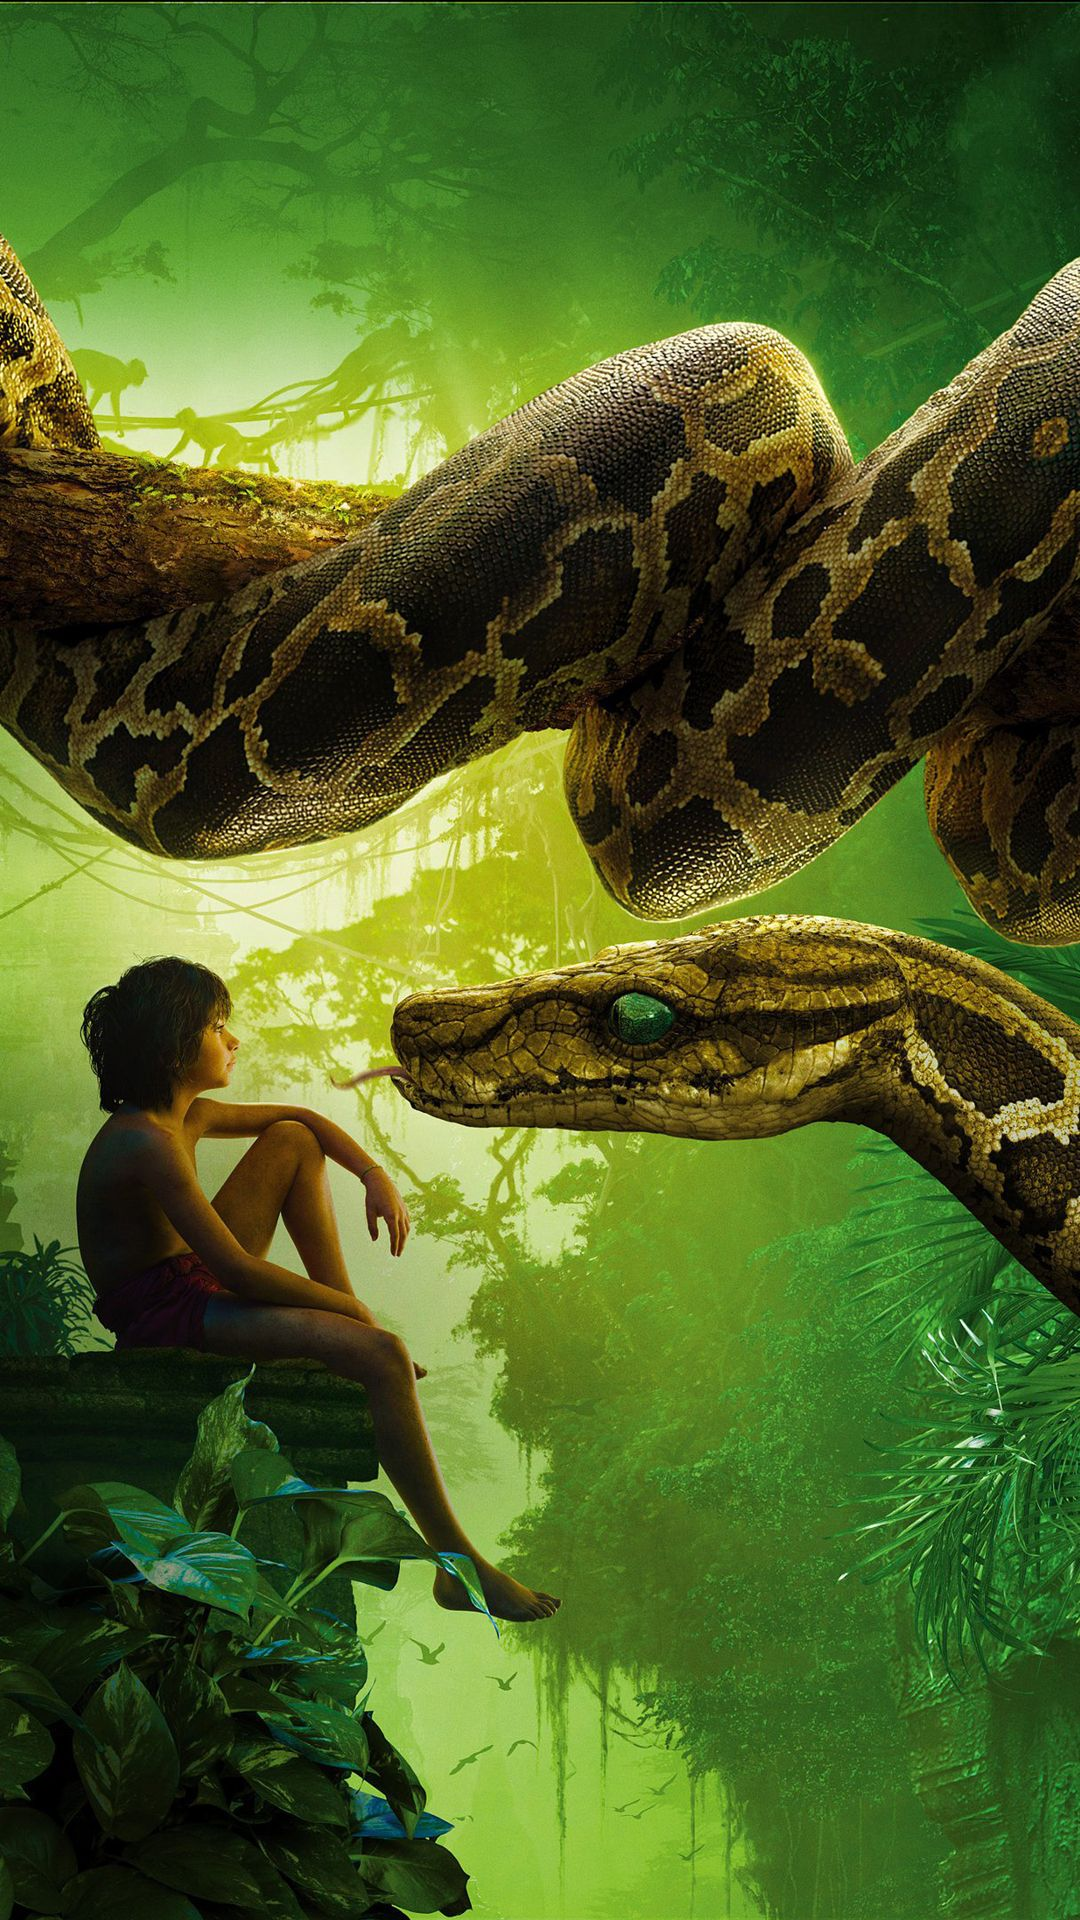 1080x1920 The Jungle Book 2016 Movie Wallpapers for iPhone - Apple Lives